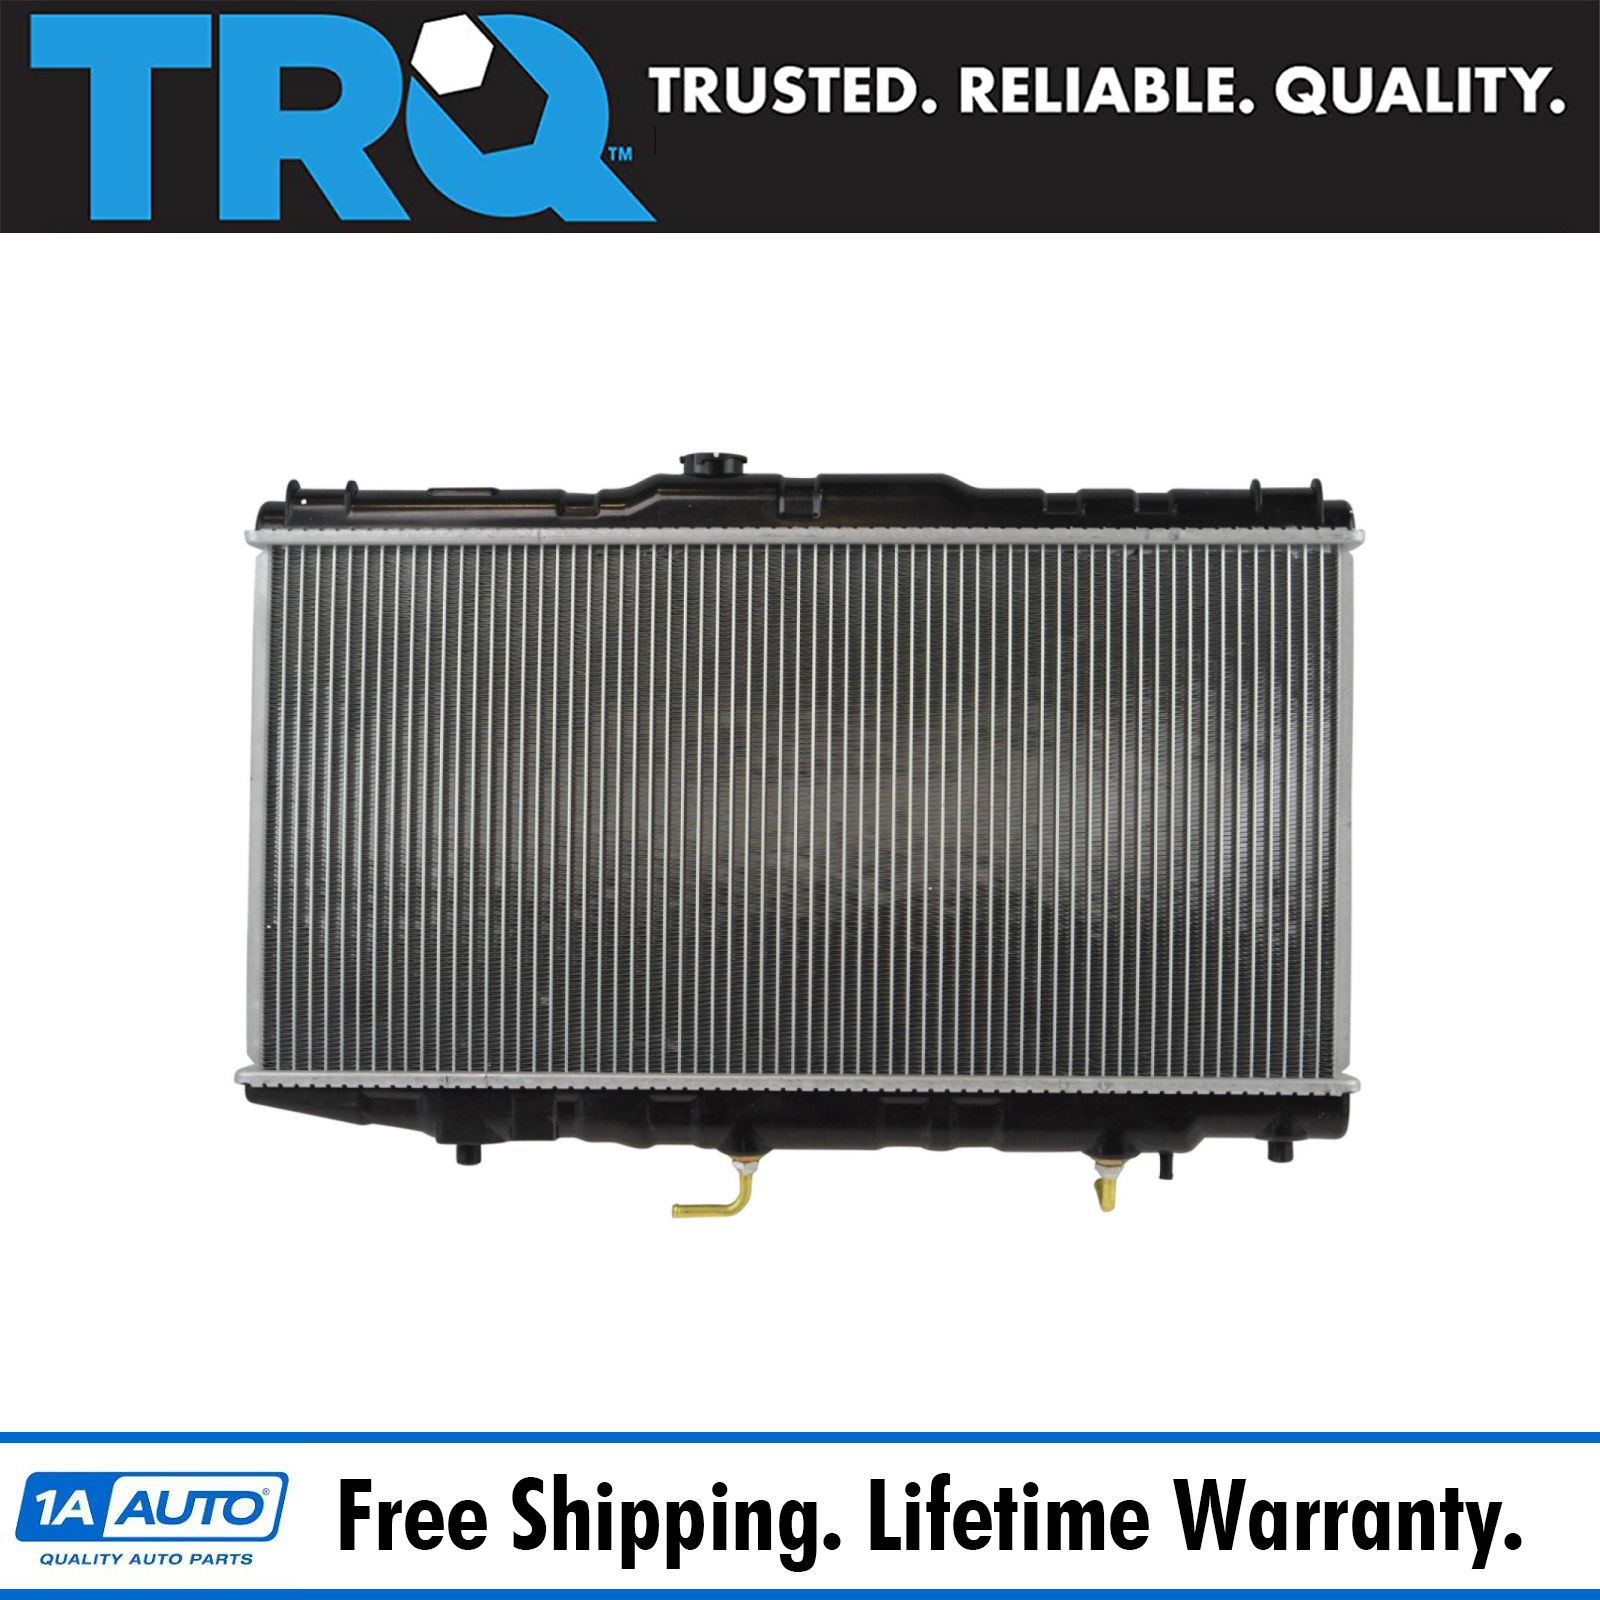 Radiator Assembly Aluminum Core Direct Fit for Corolla Prizm 1.6L 1.8L New